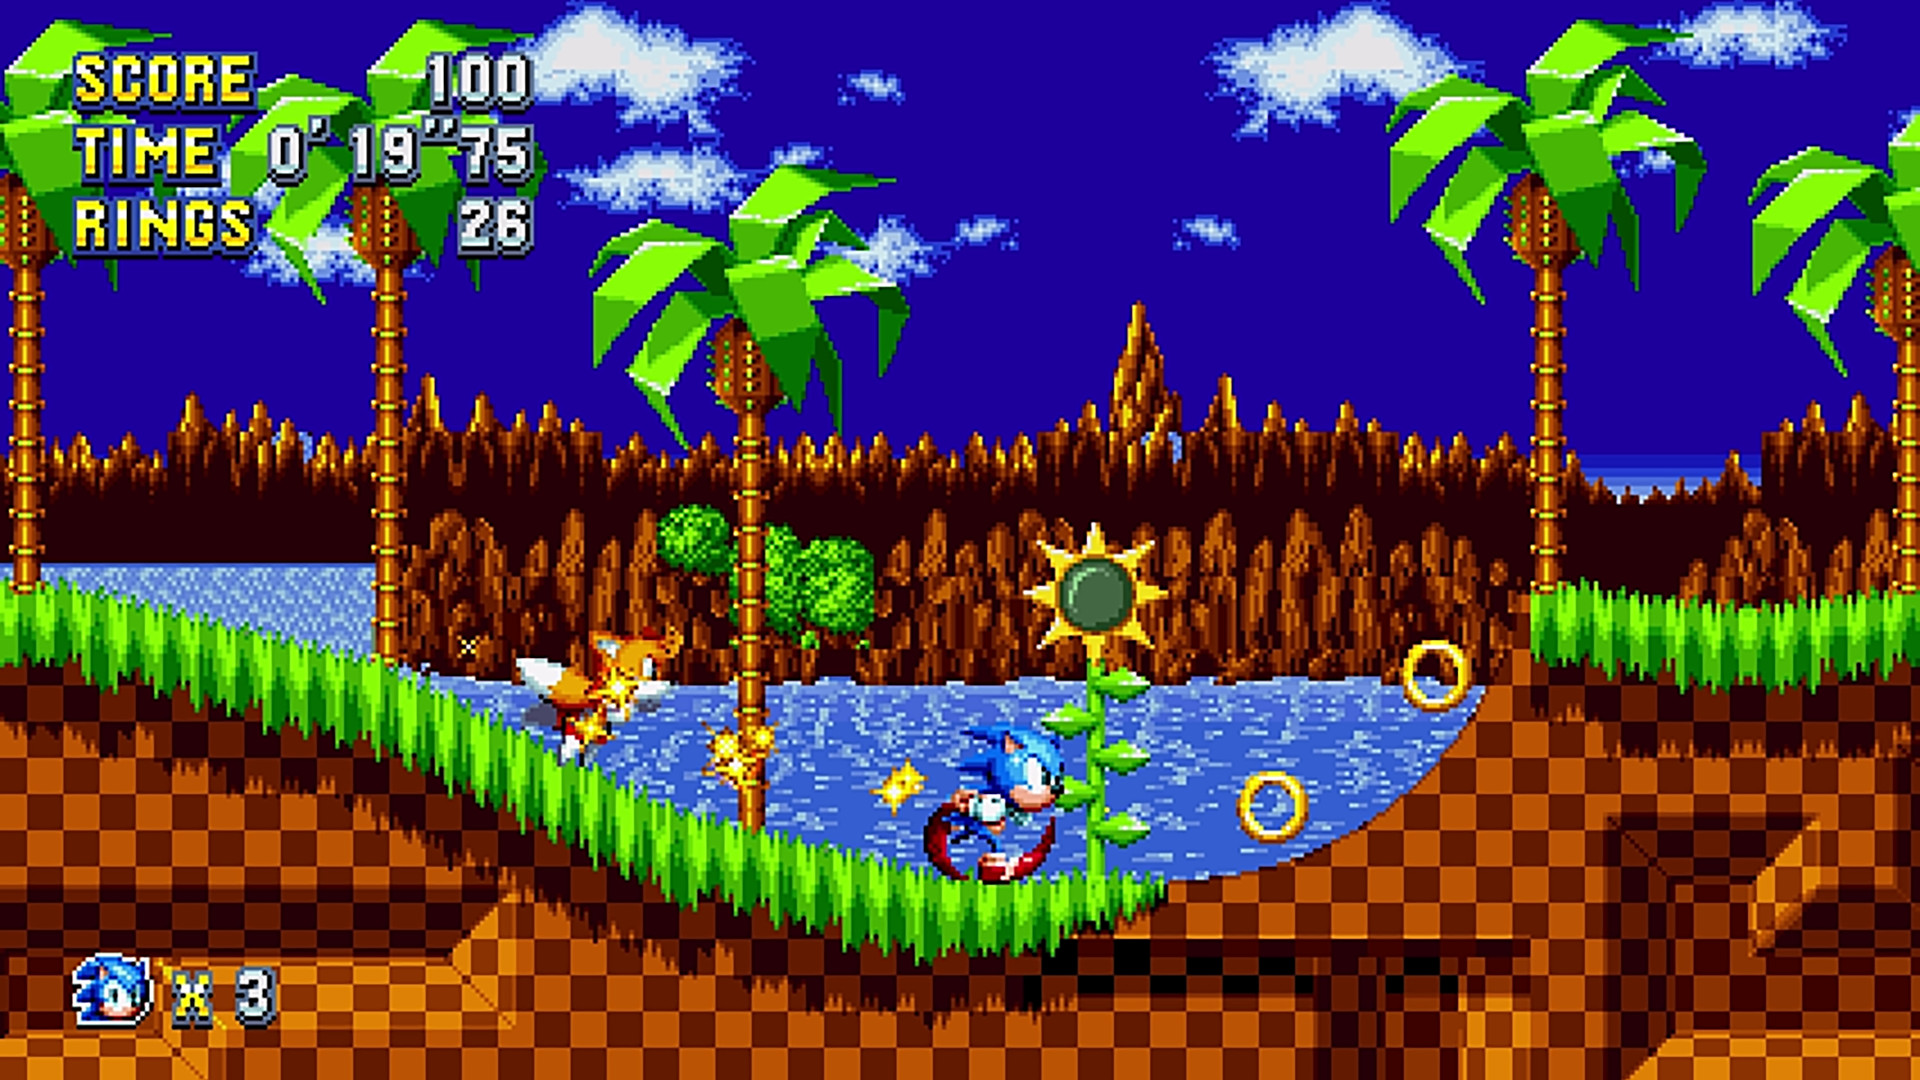 Sonic Mania Wallpaper Size by Nibroc-Rock on DeviantArt